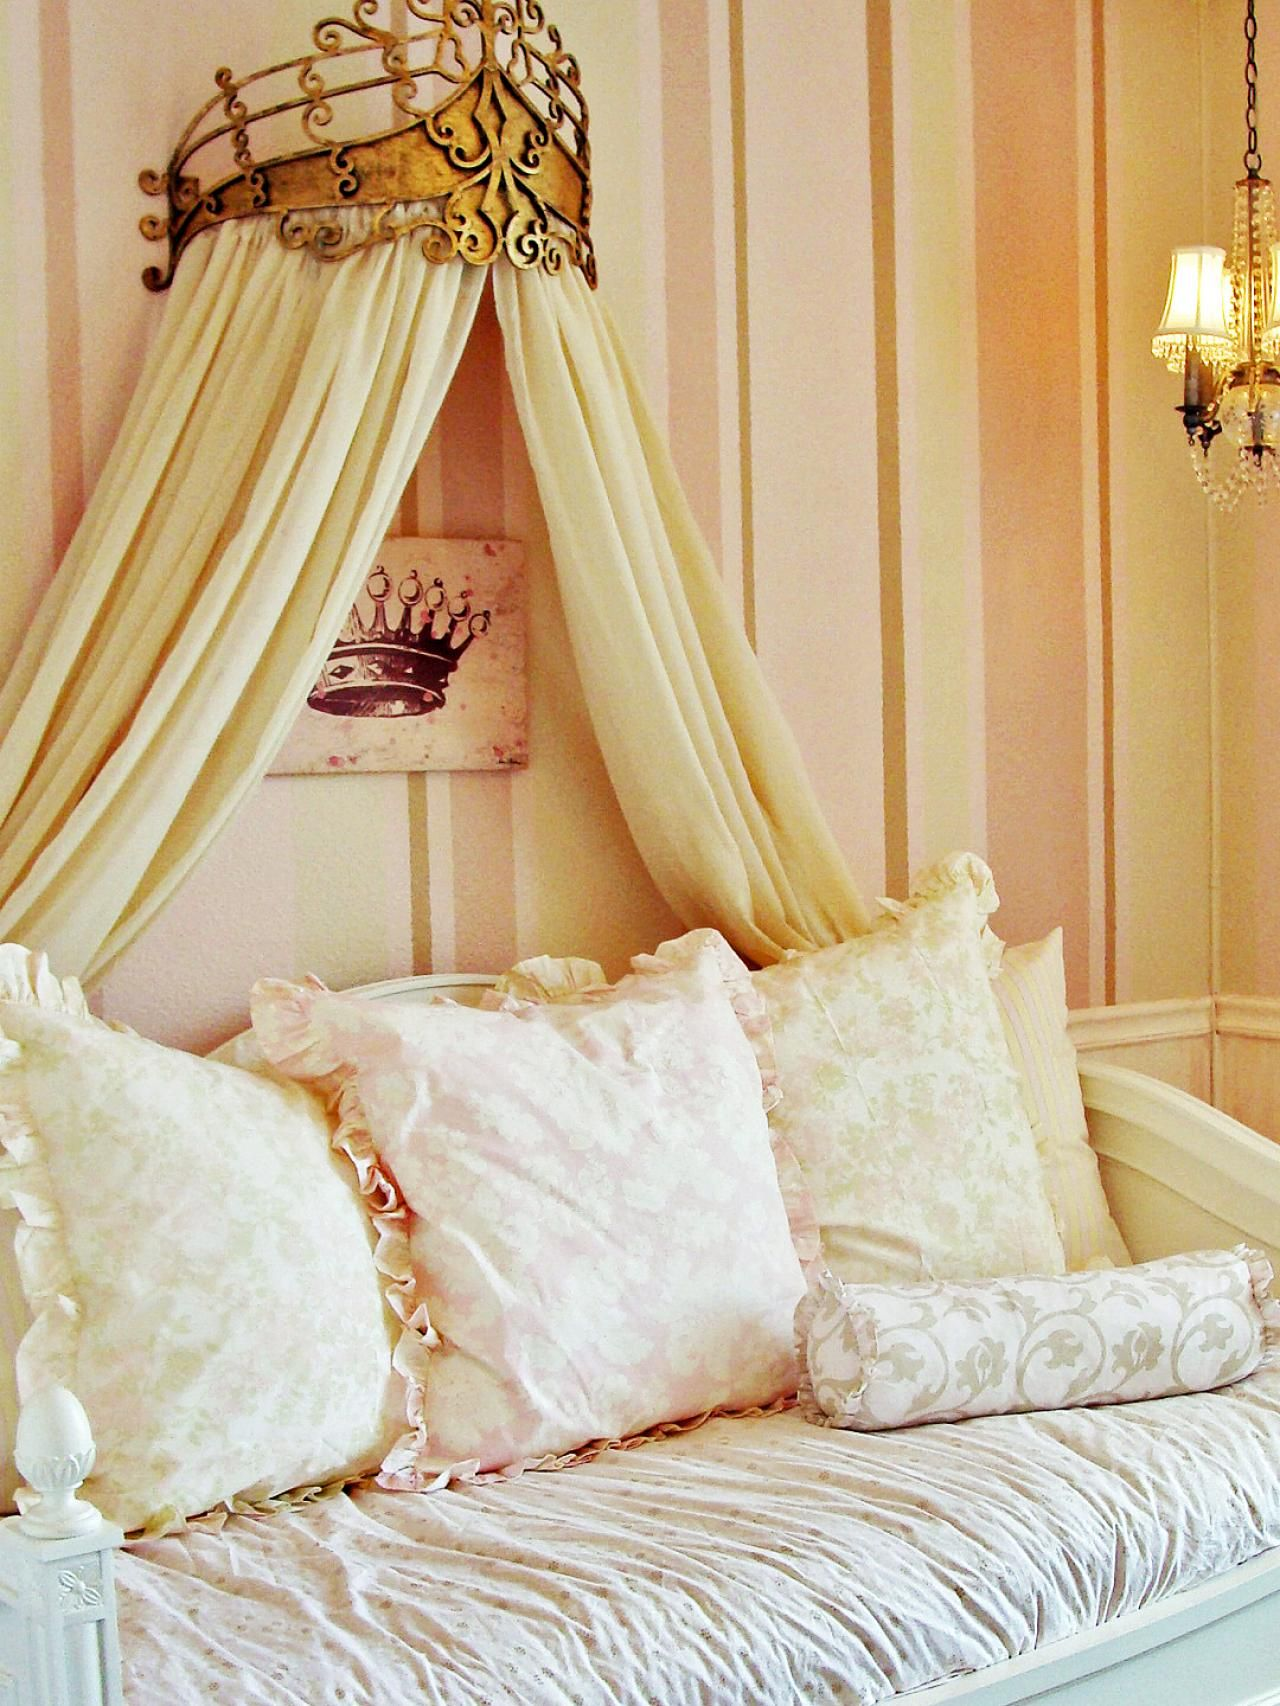 Add Shabby Chic Touches to Your Bedroom Design. Add Shabby Chic Touches to Your Bedroom Design   Pink color